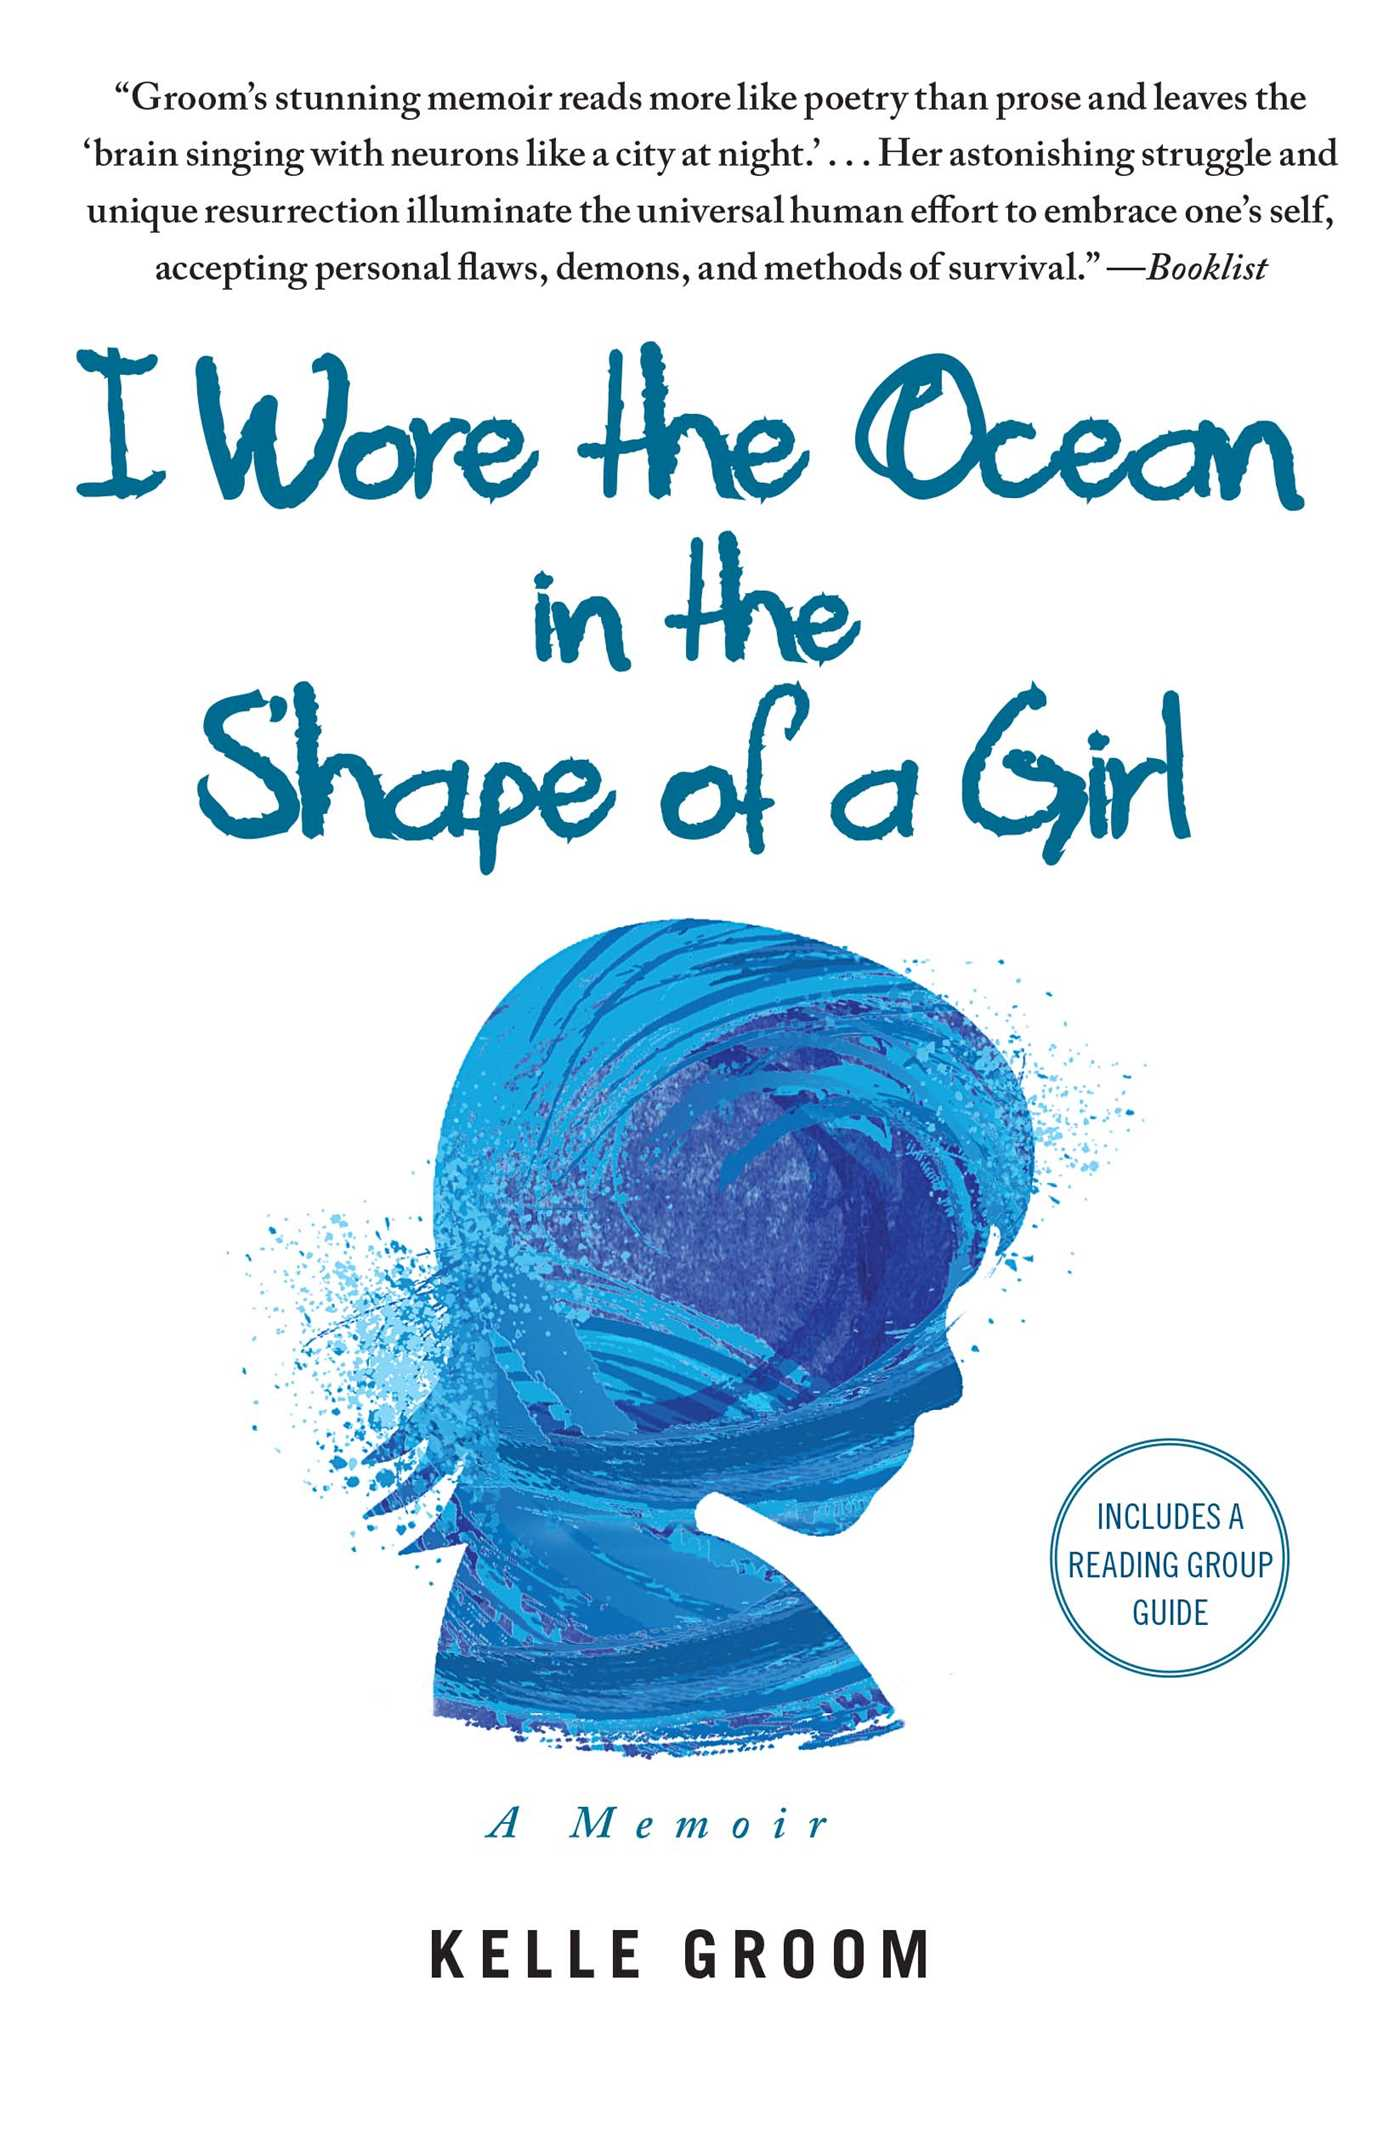 I wore the ocean in the shape of a girl 9781451616705 hr